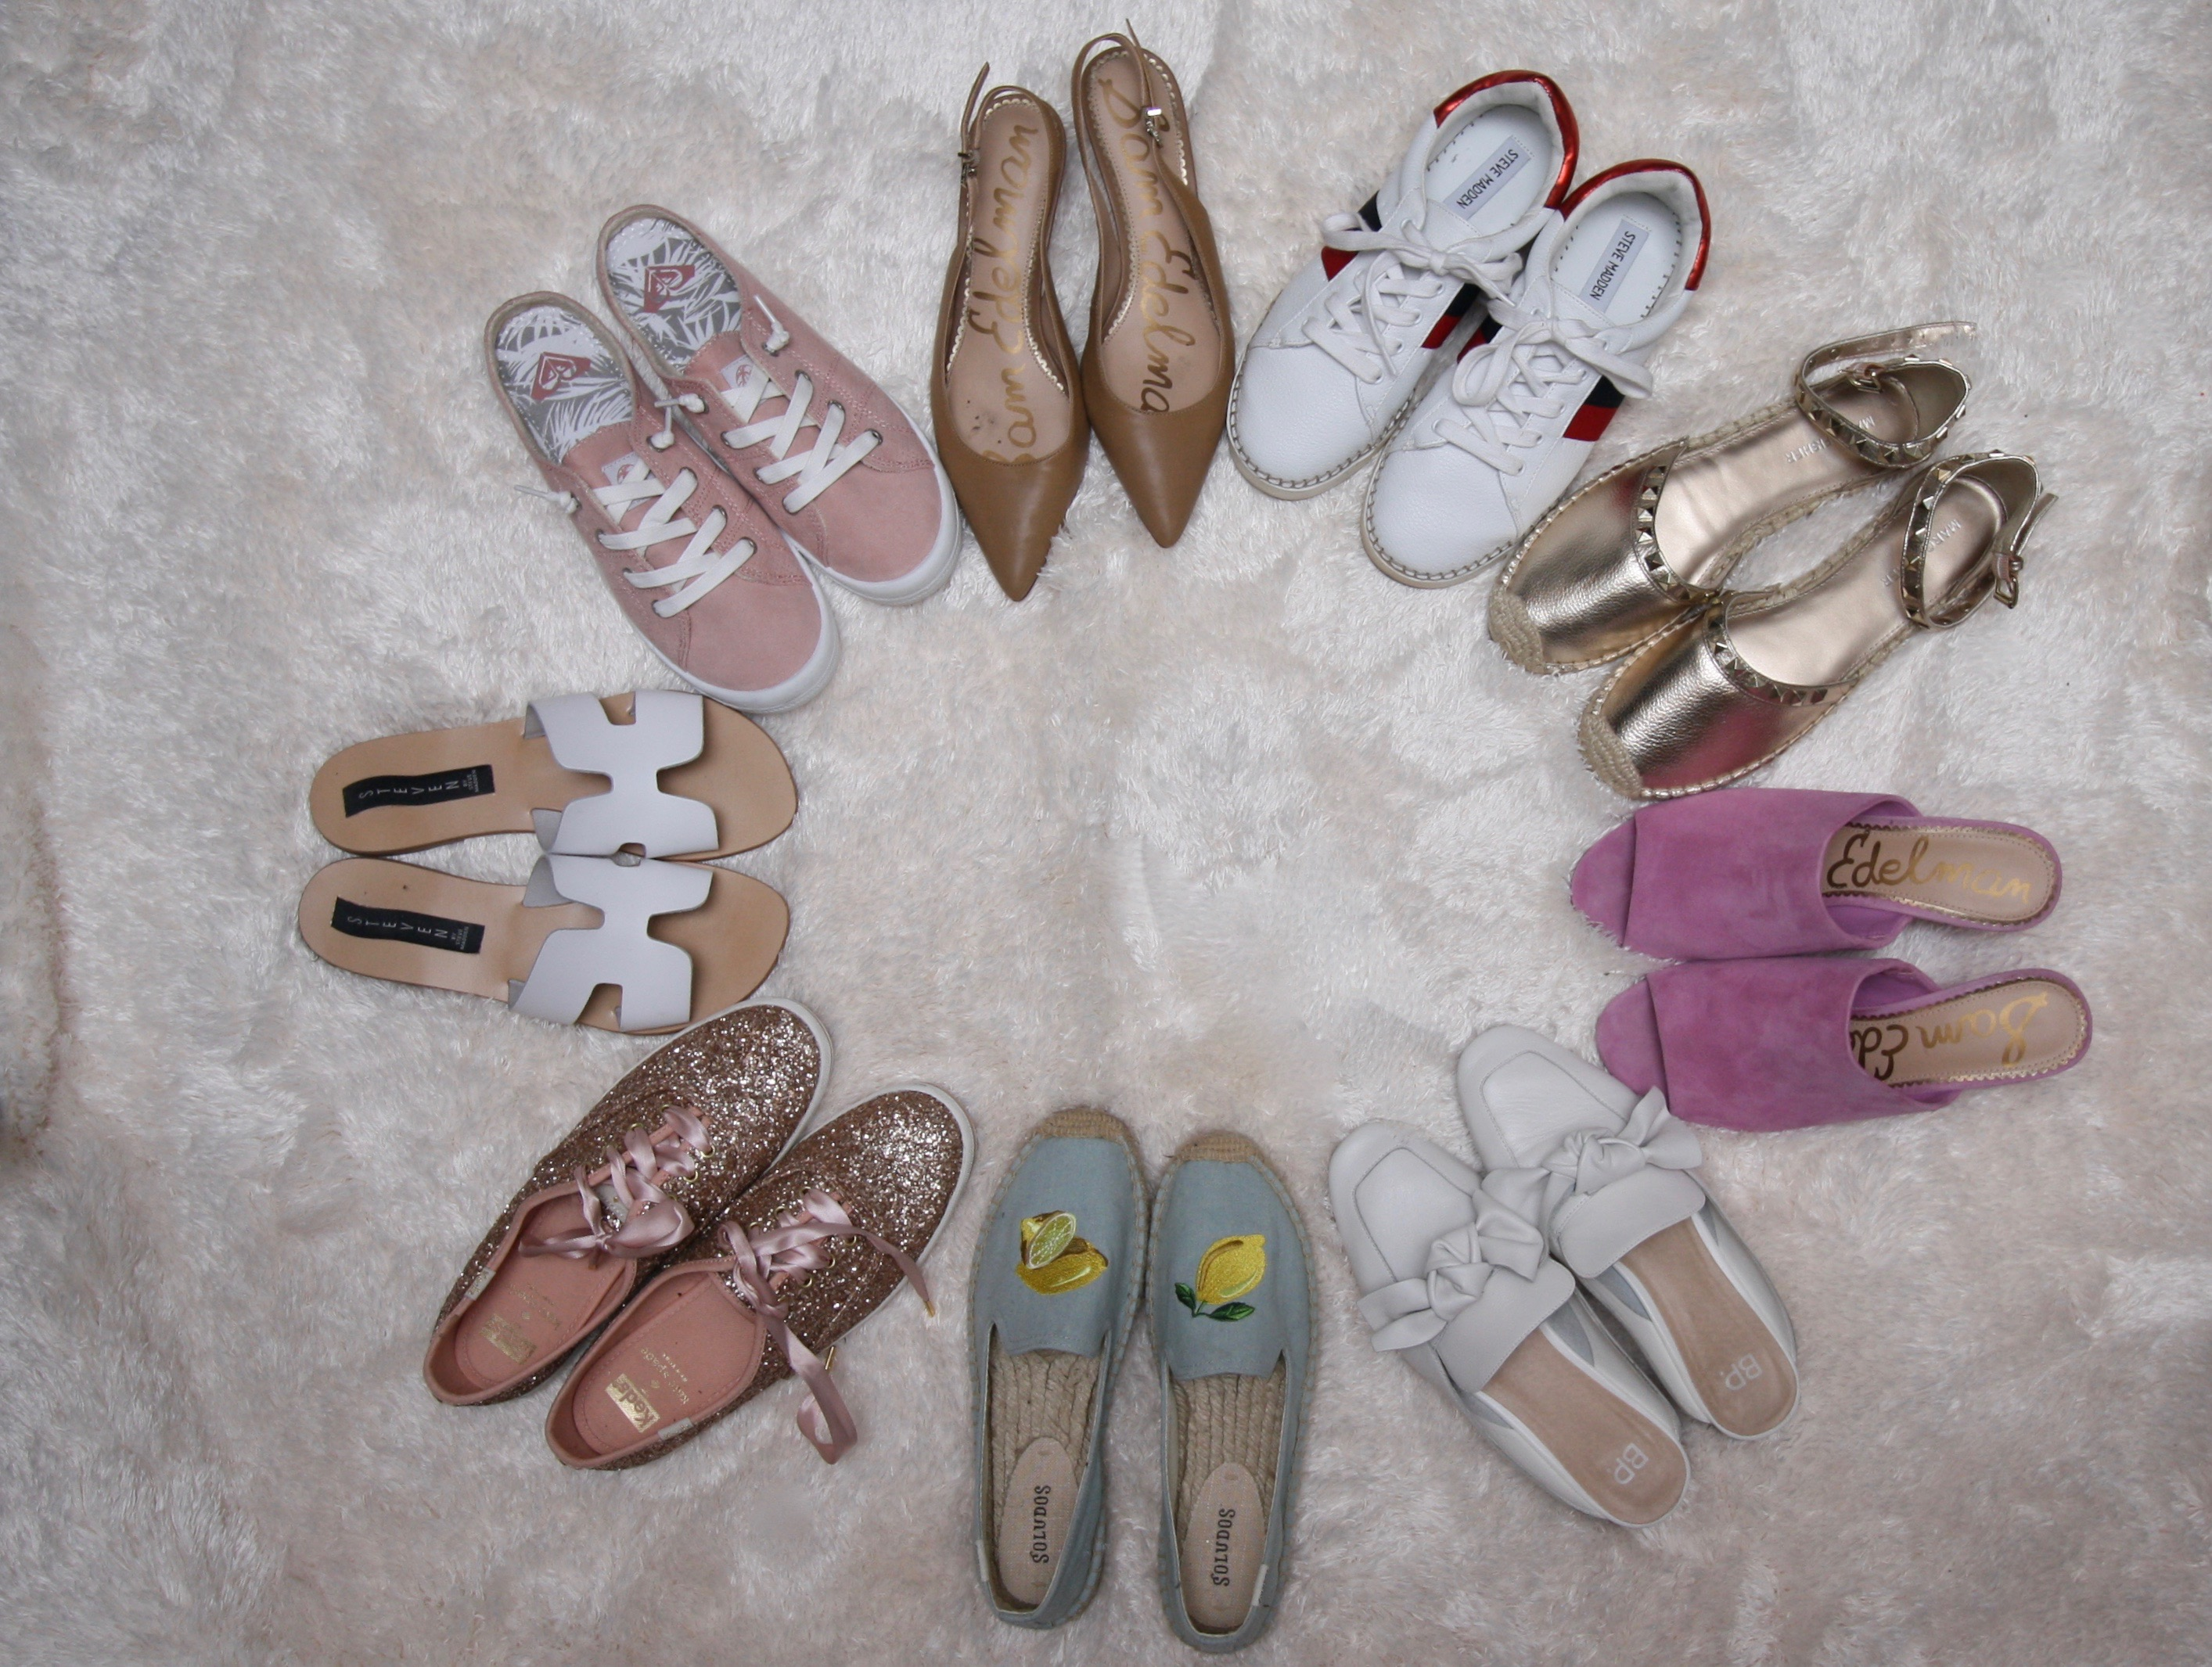 8b5945796 My Favorite Shoes for Summer! Styles and Types of Shoes that Help me Feel  Comfortable and Confident.